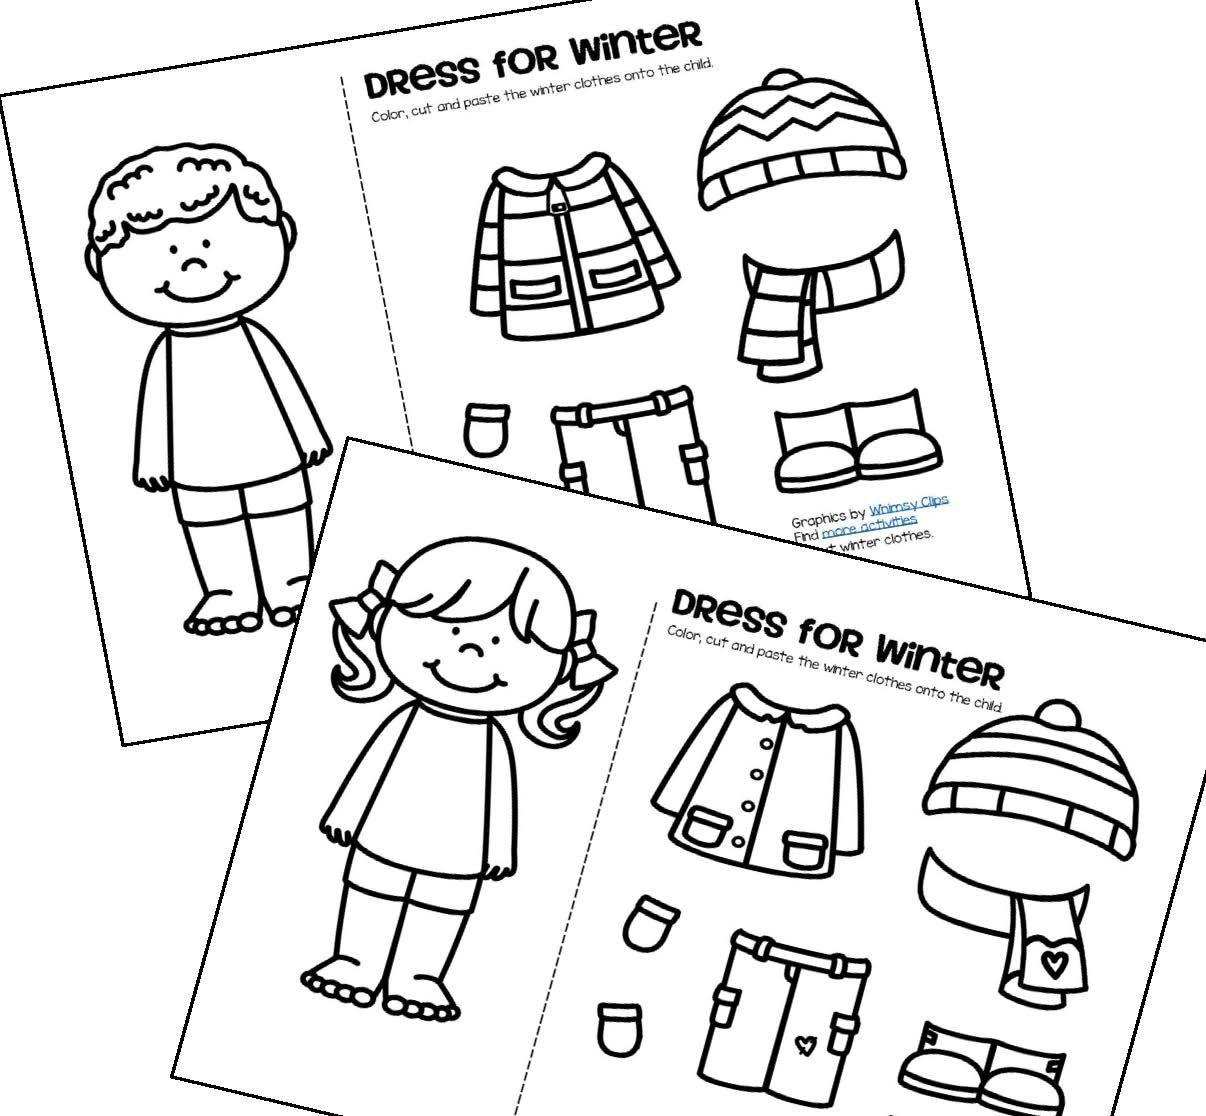 FREE Color cut and paste the winter clothes onto